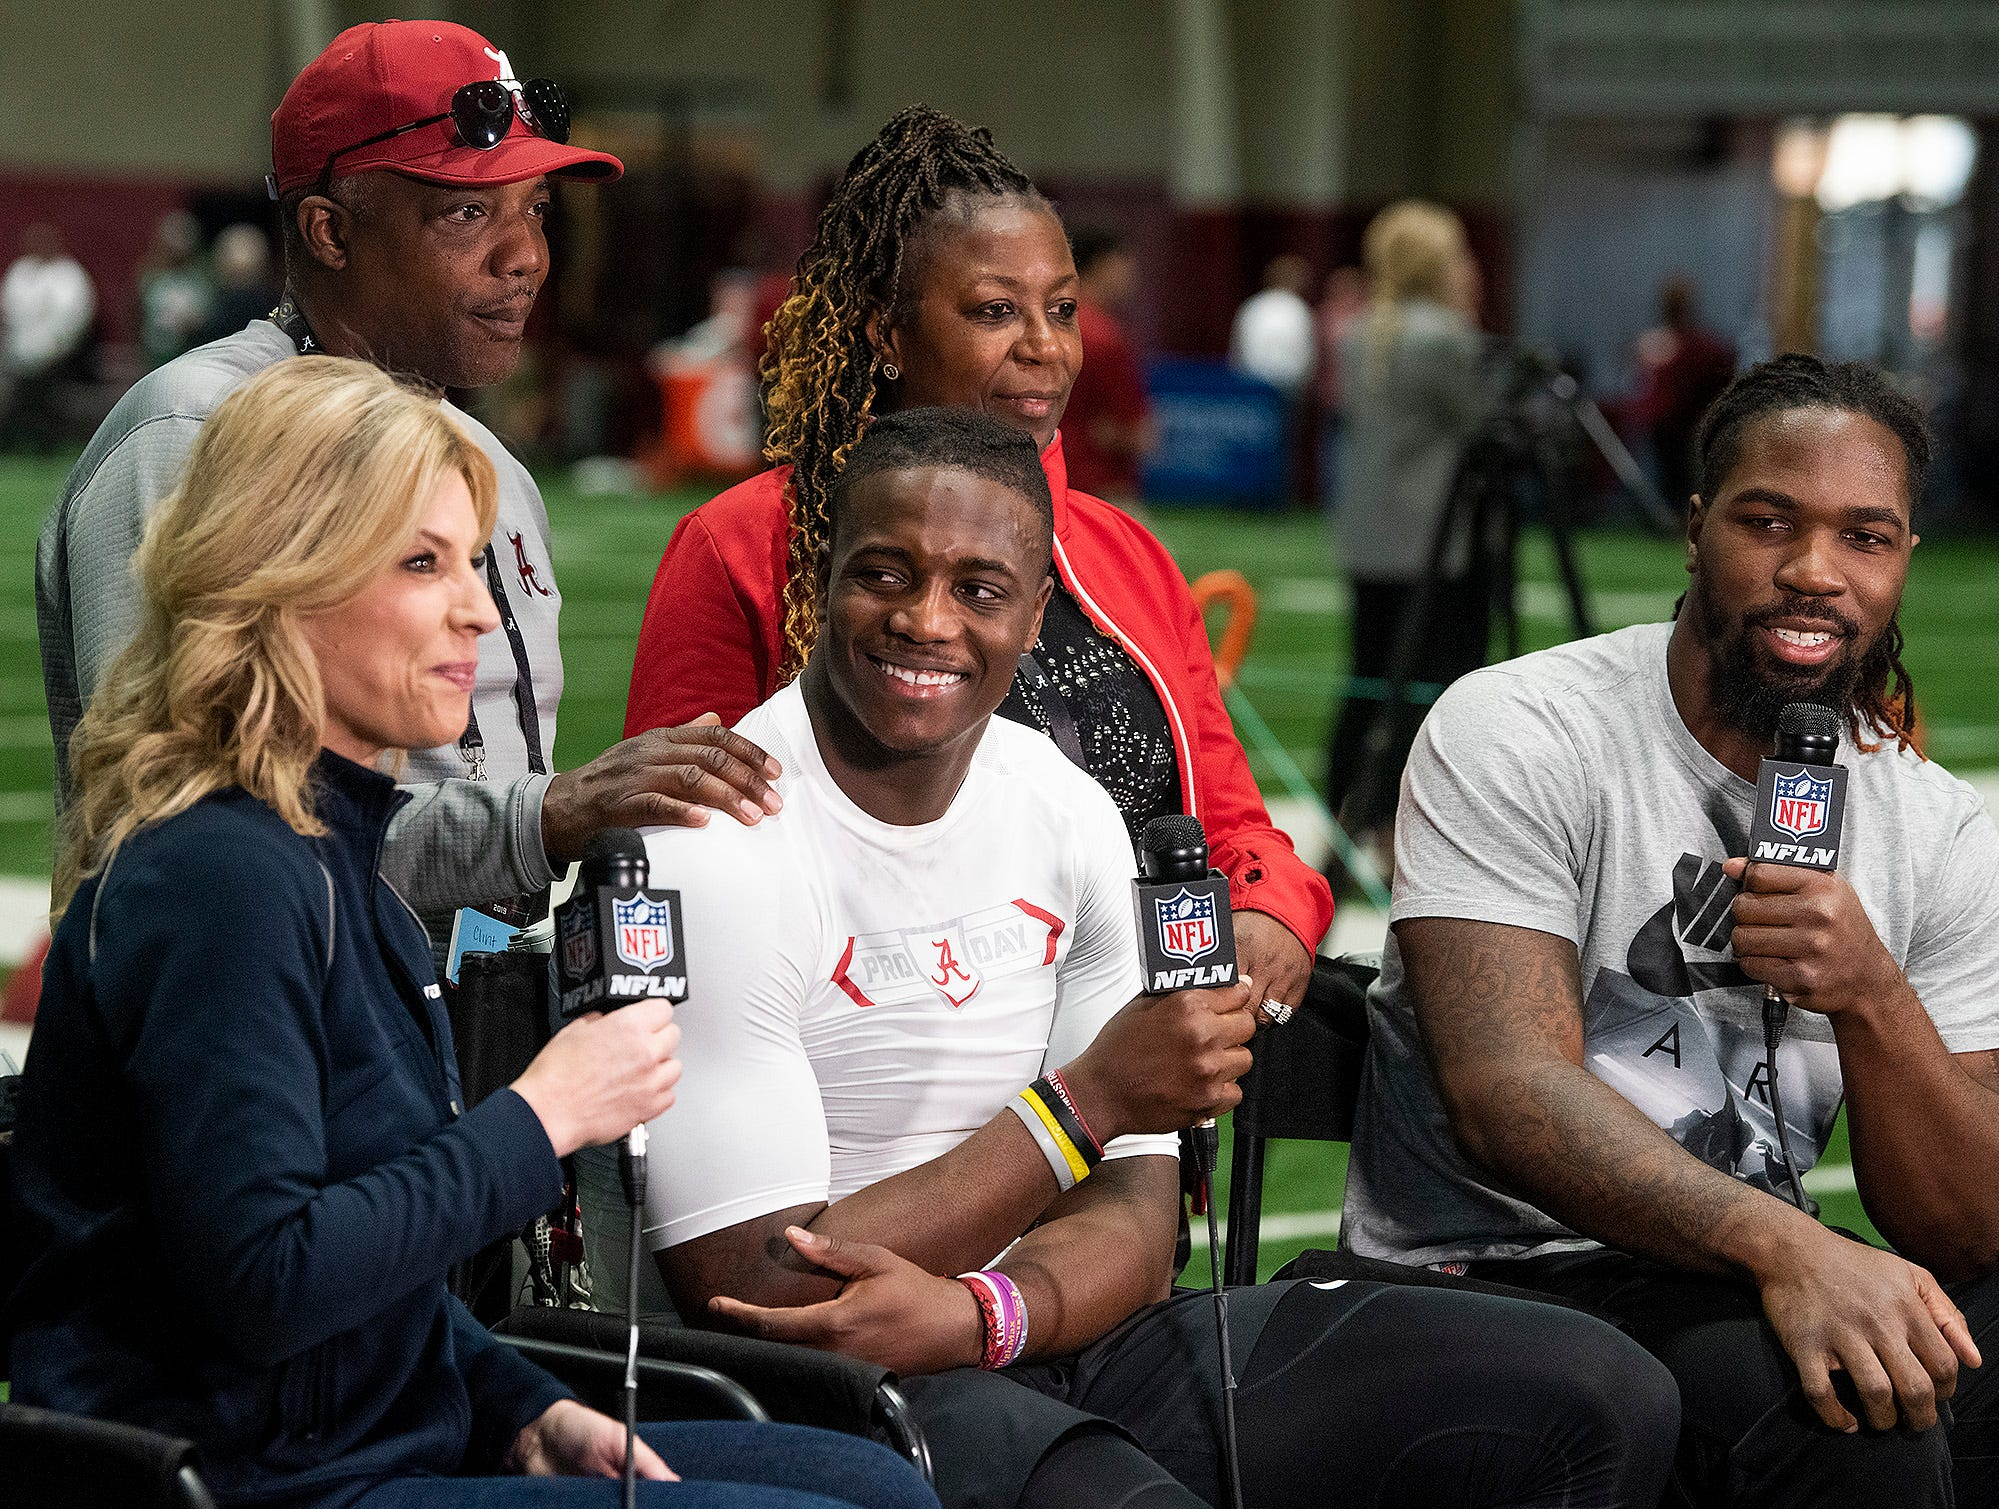 Alabama linebacker Jamey Mosley, center and his brother CJ Mosely are interviewed with their family during Pro Day on the University of Alabama campus in Tuscaloosa, Ala., on Tuesday March 19, 2019.